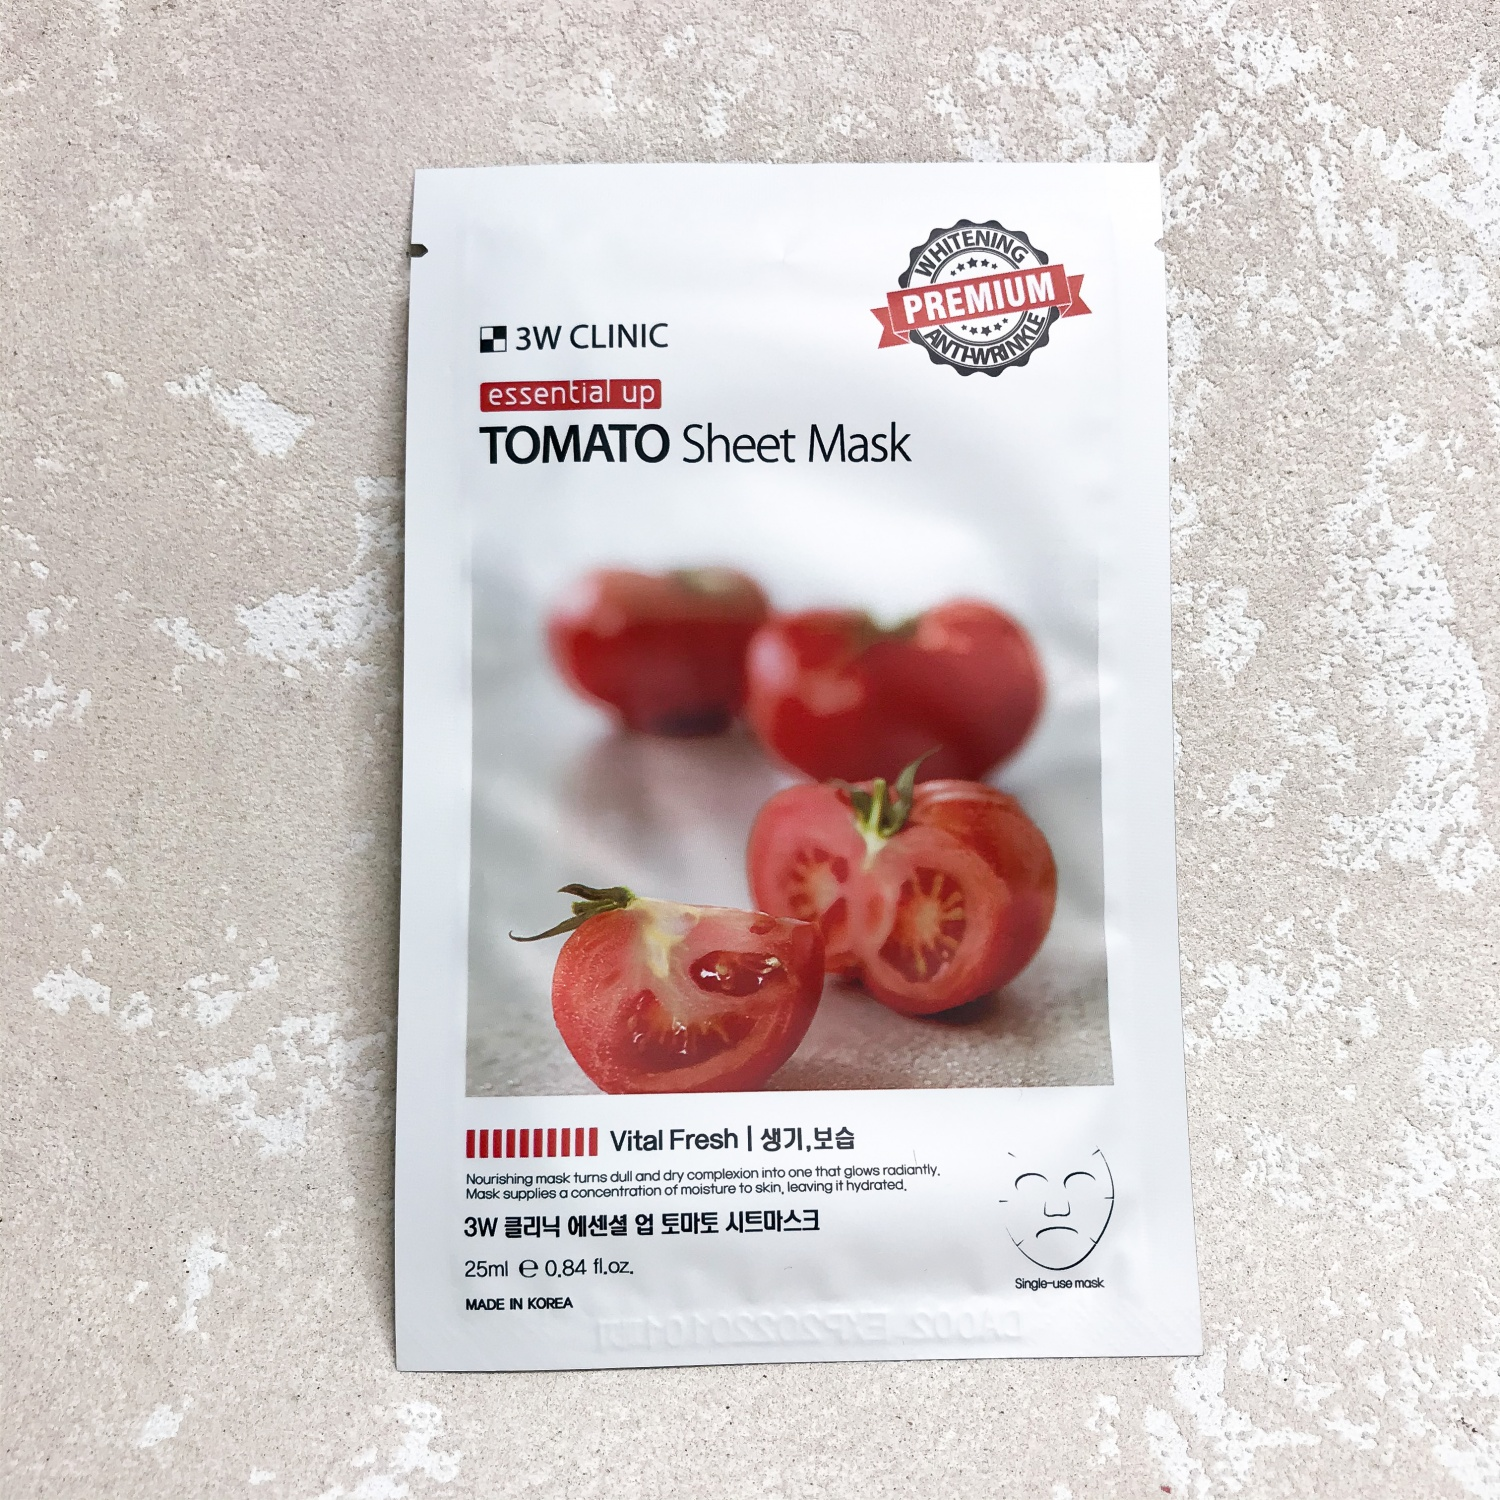 3W Clinic Essential Up Tomato Sheet Mask